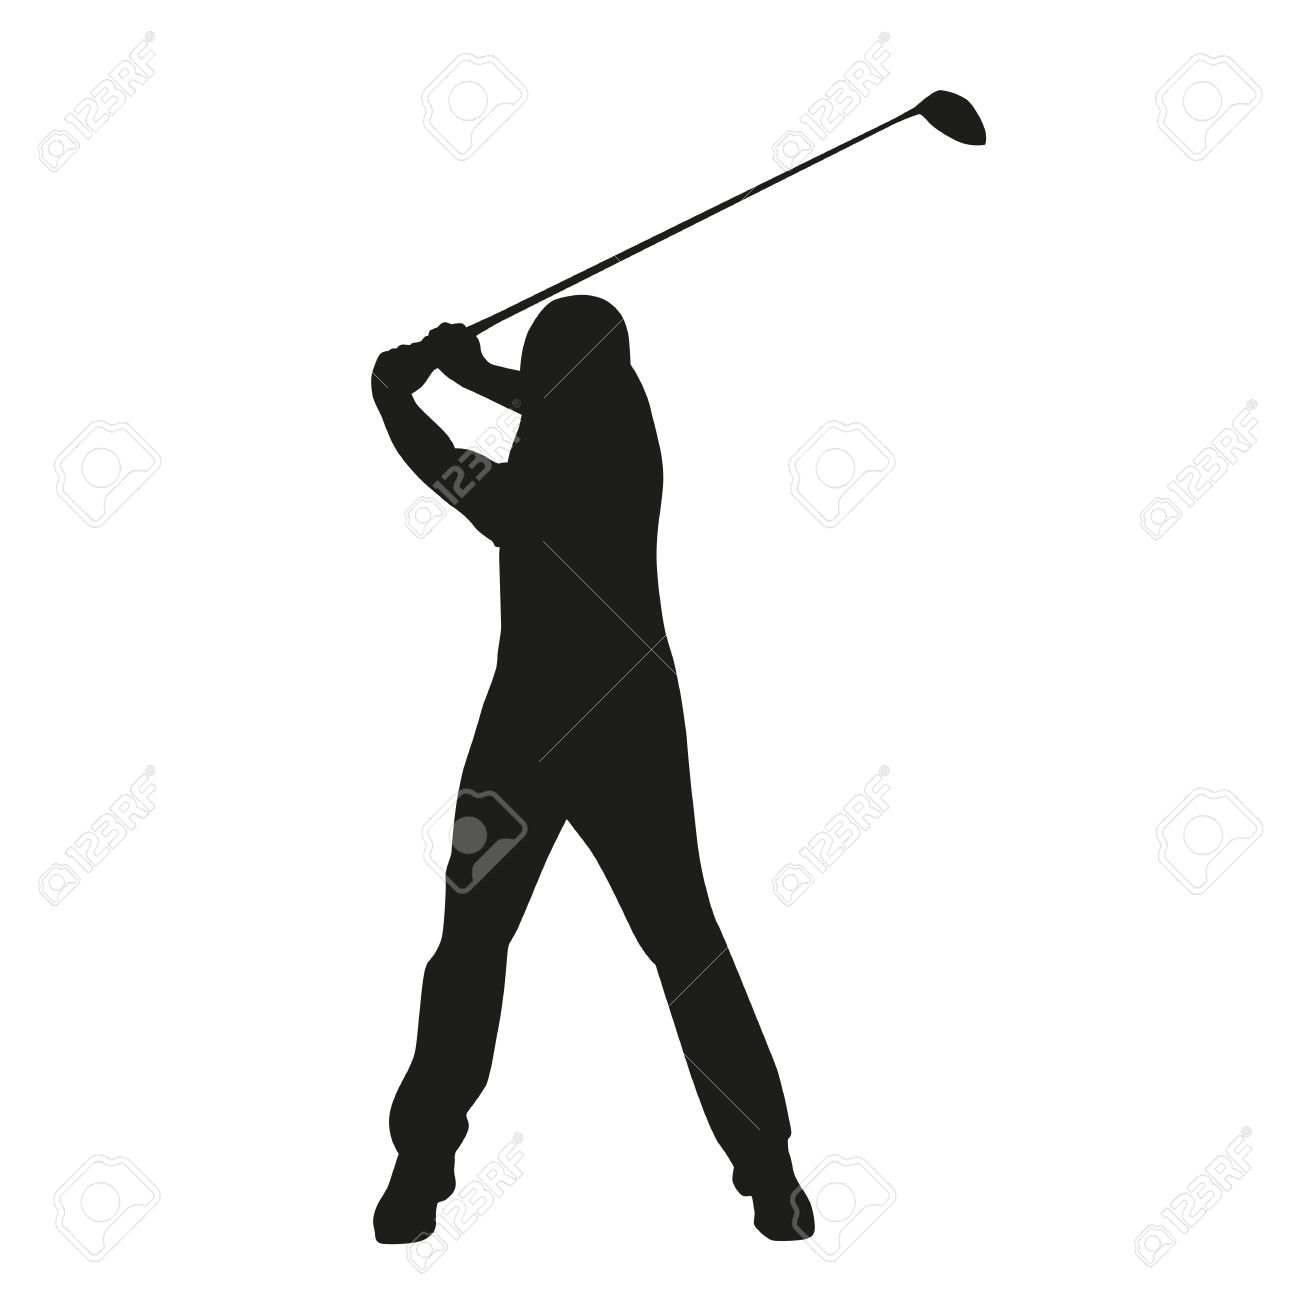 1300x1300 Picturesque Golfer Silhouette Vector Free Golf Action Material My